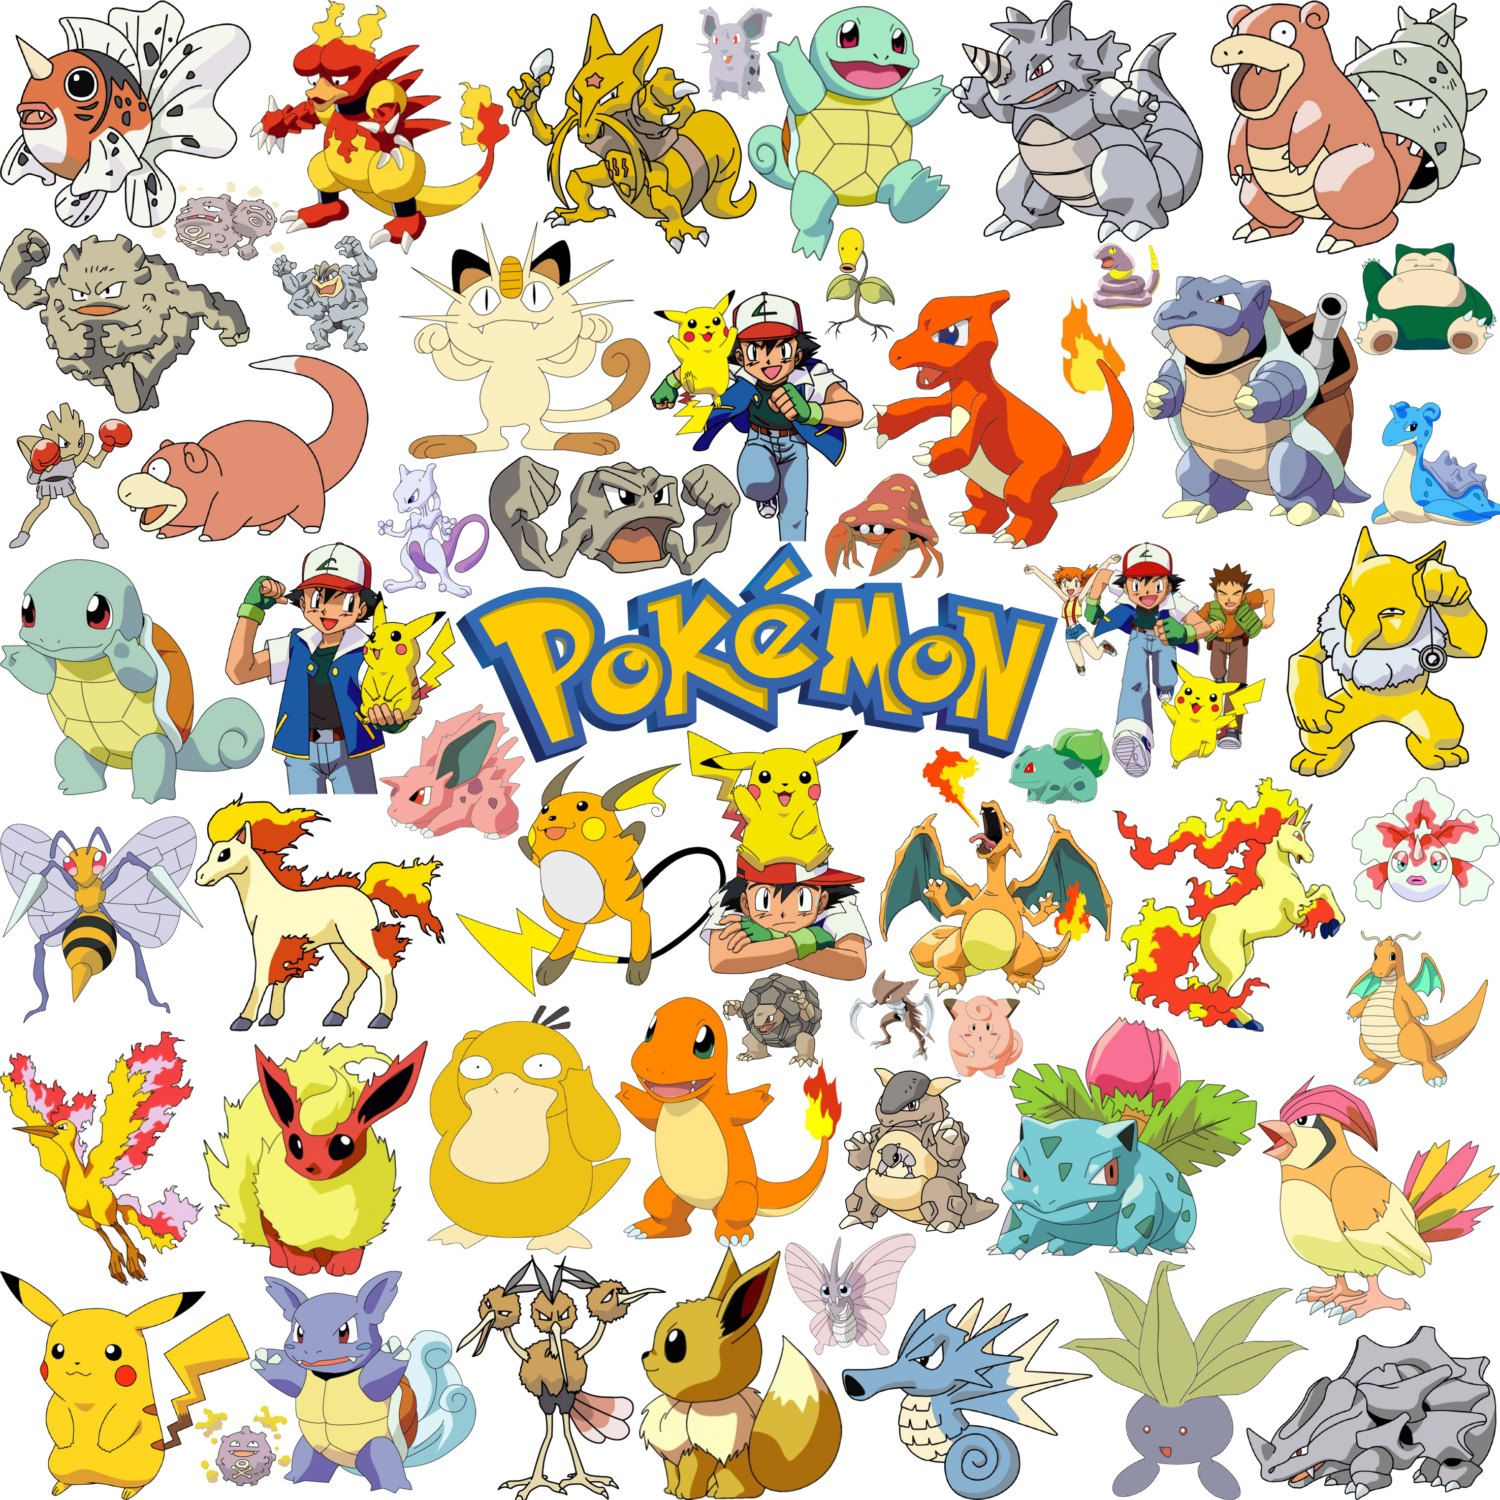 Uncategorized Pokemon Pictures Printable 205 pokemon clipart go stickers printable tools party decoration scrapbook